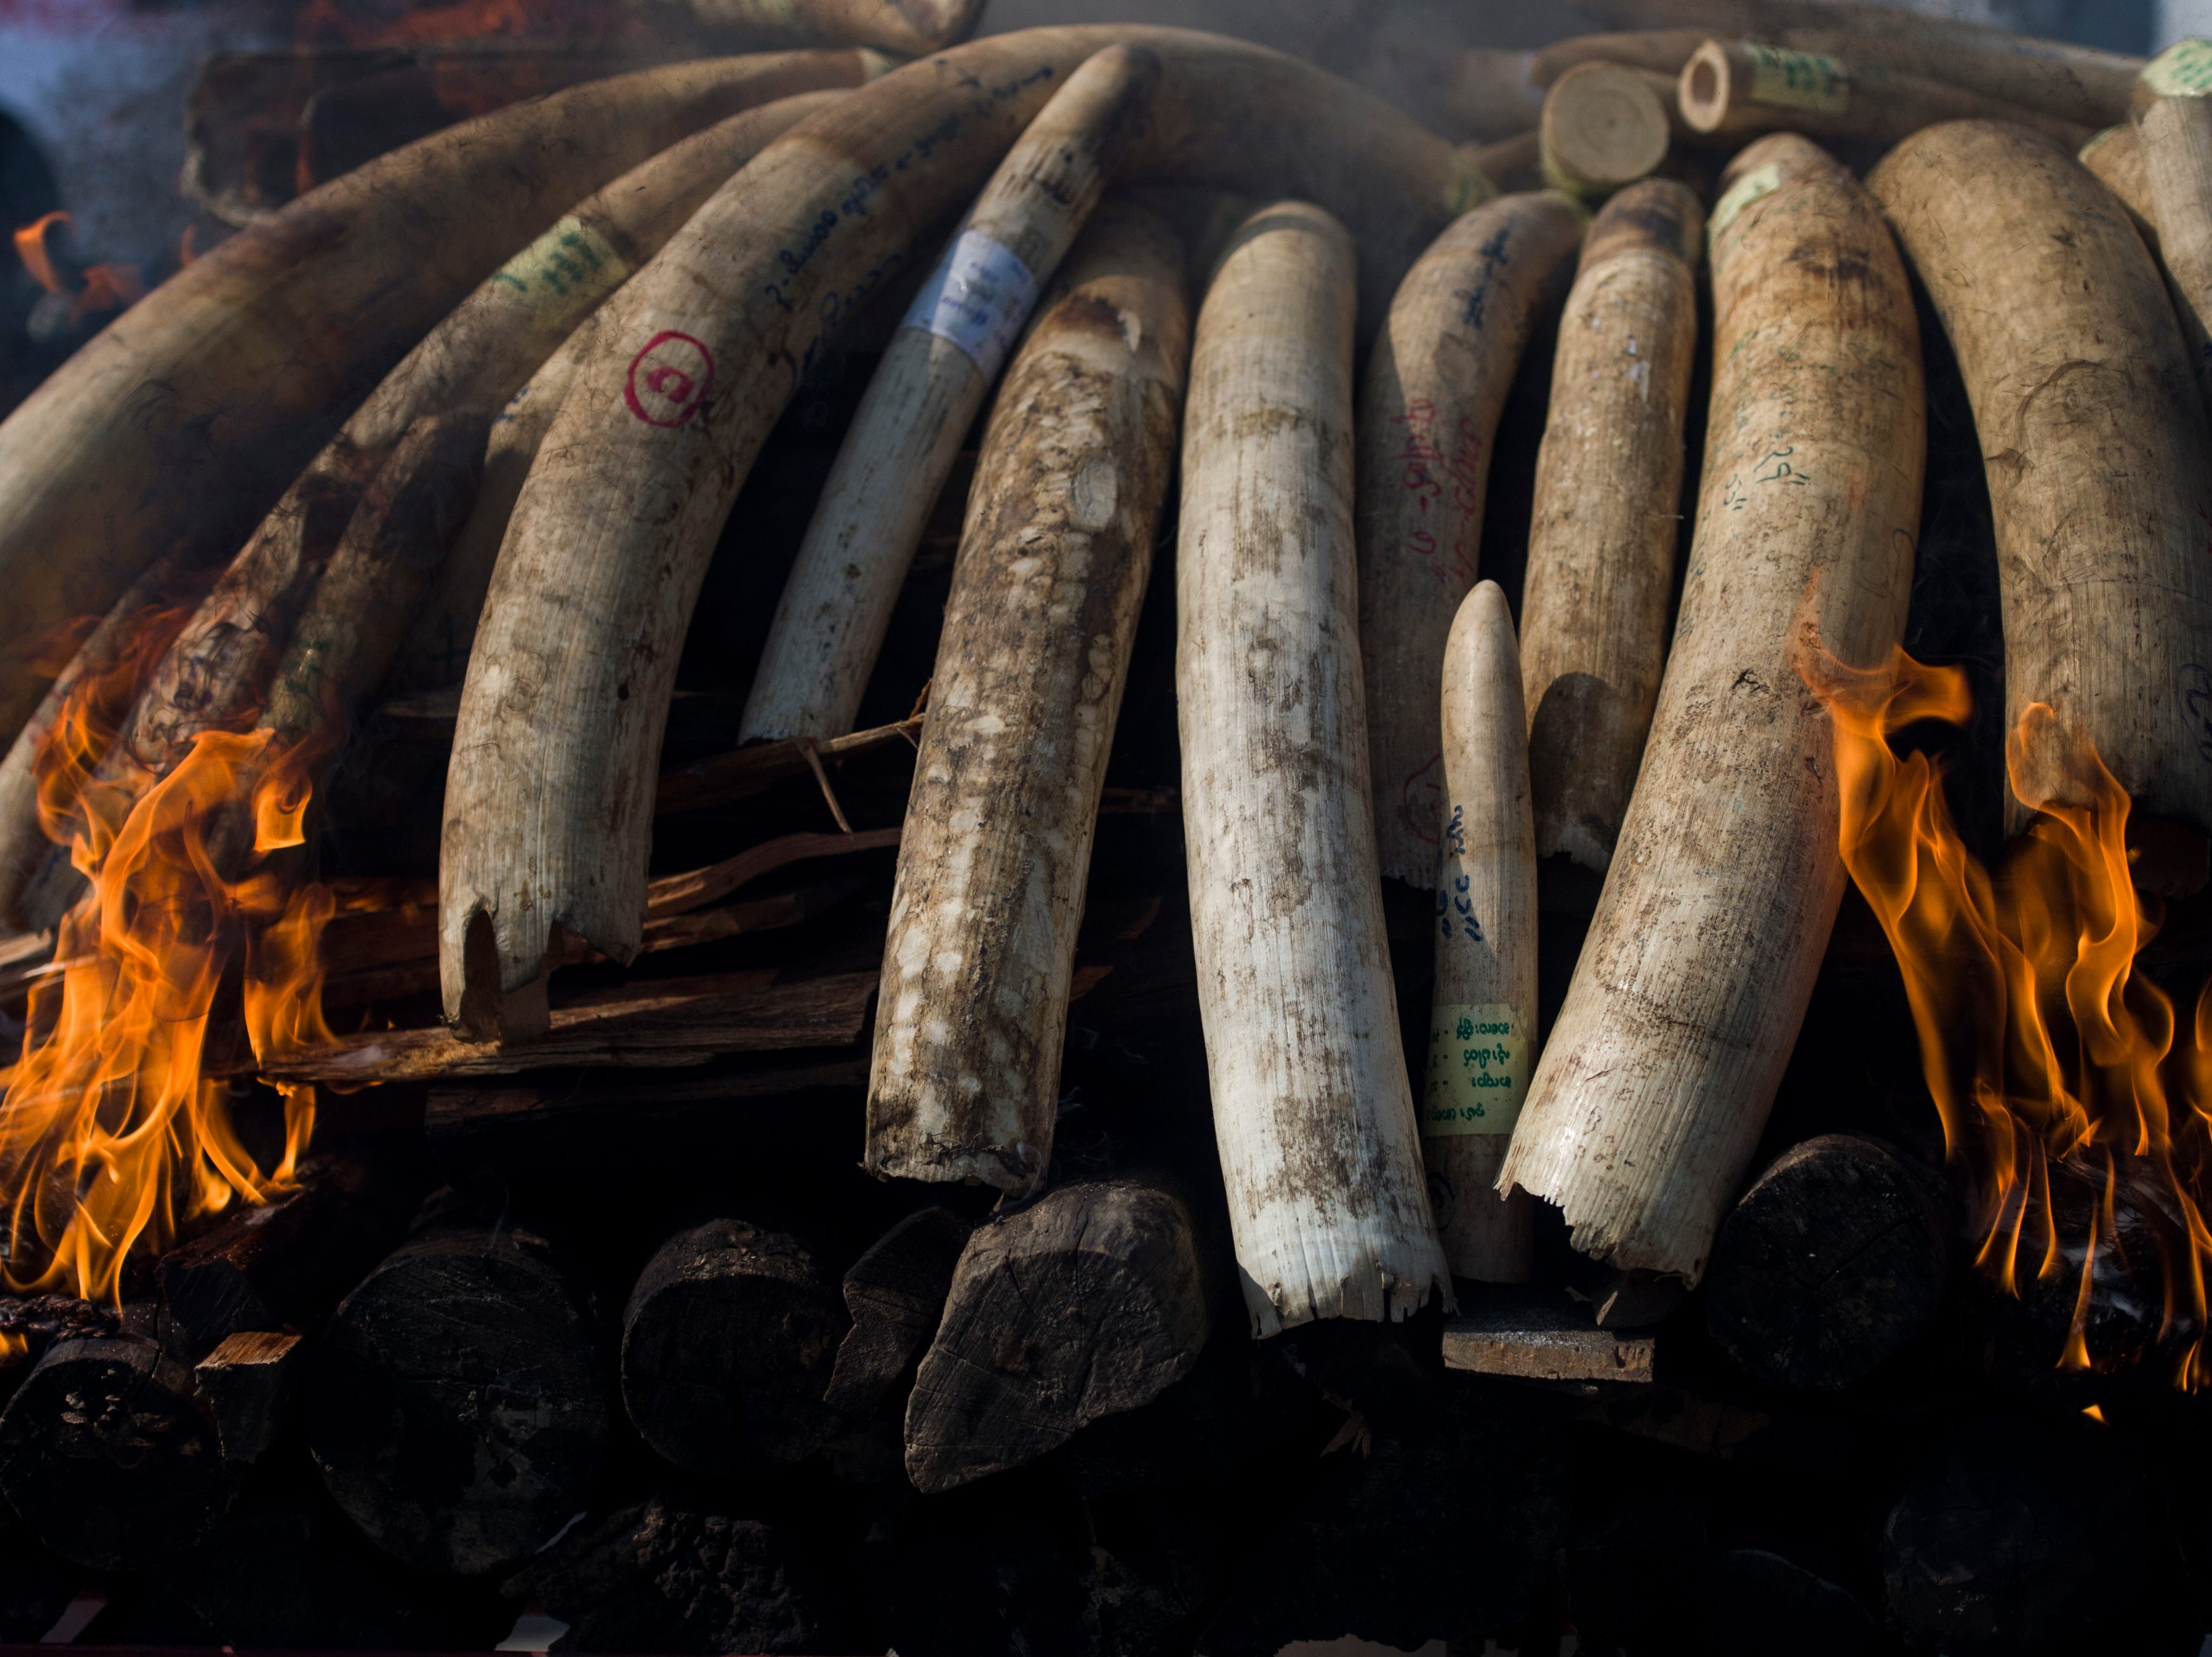 Elephant ivory and animal horns burn during a ceremony to destroy confiscated wildlife parts in Naypyidaw on October 4, 2018.